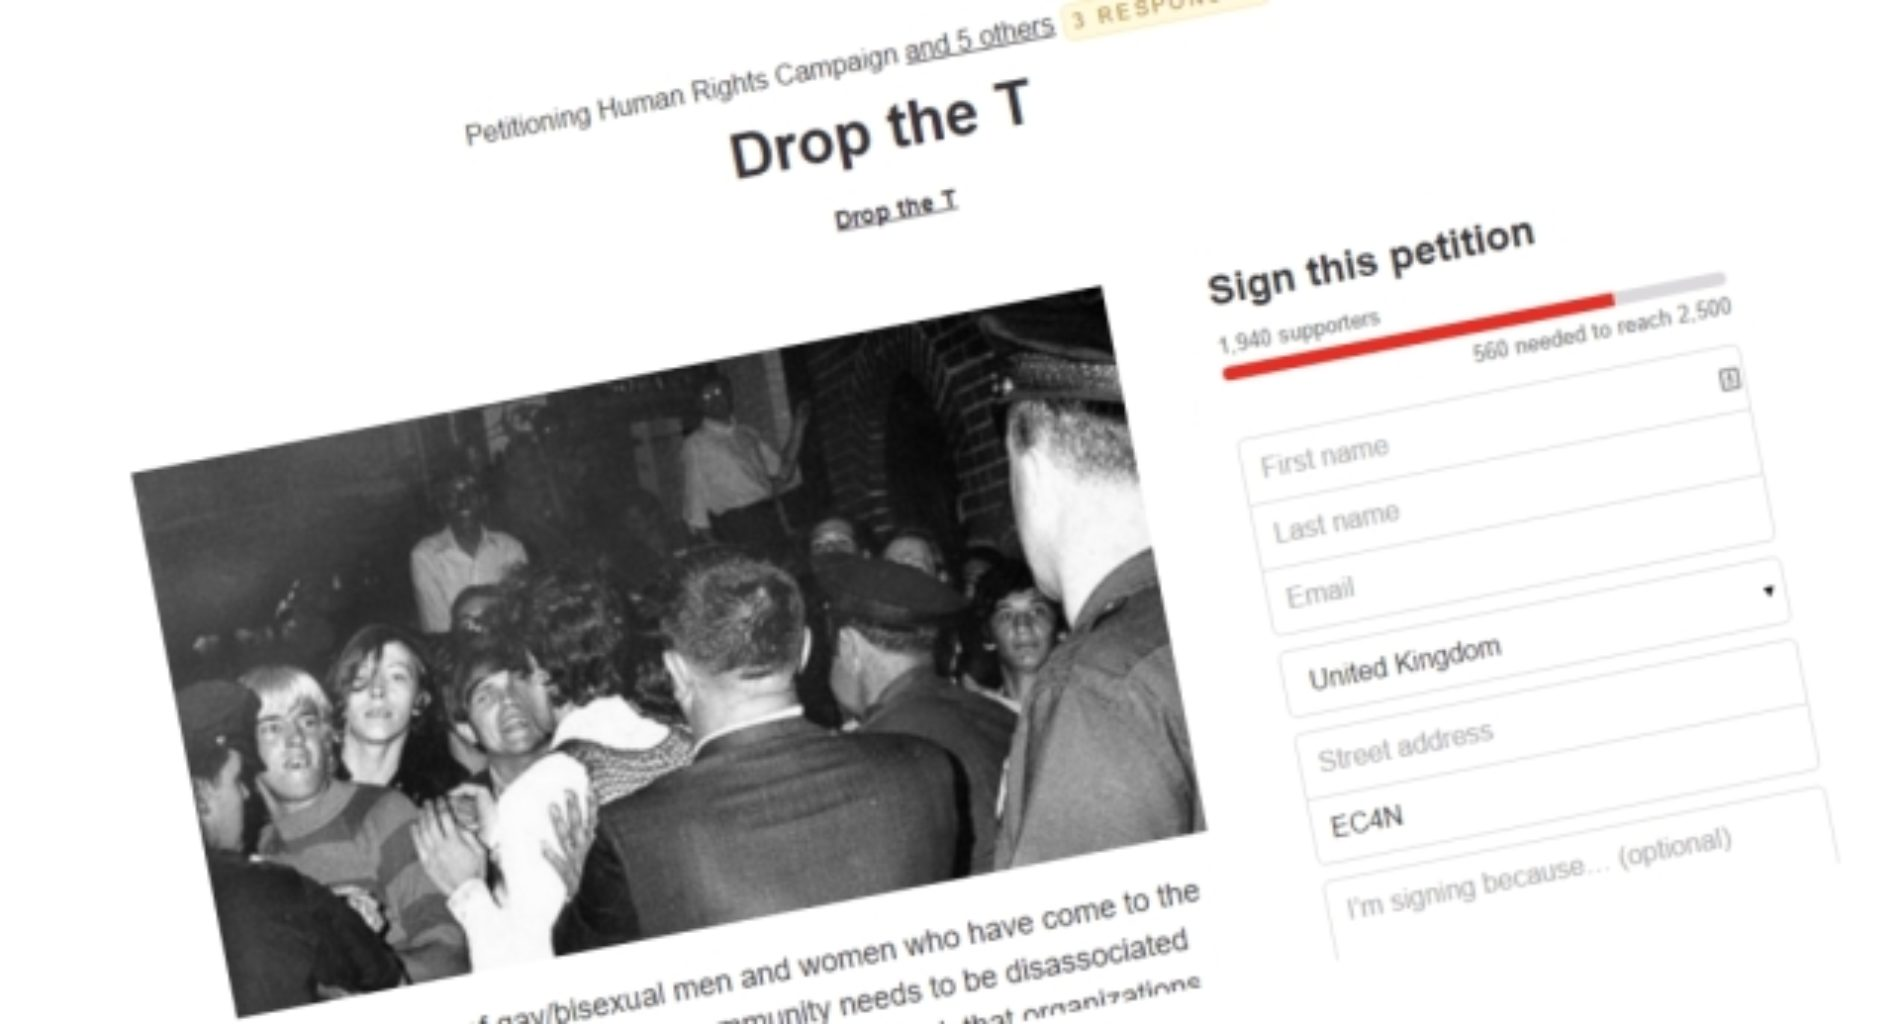 The 'Drop The T' Petition and how the LGBT is reacting to it